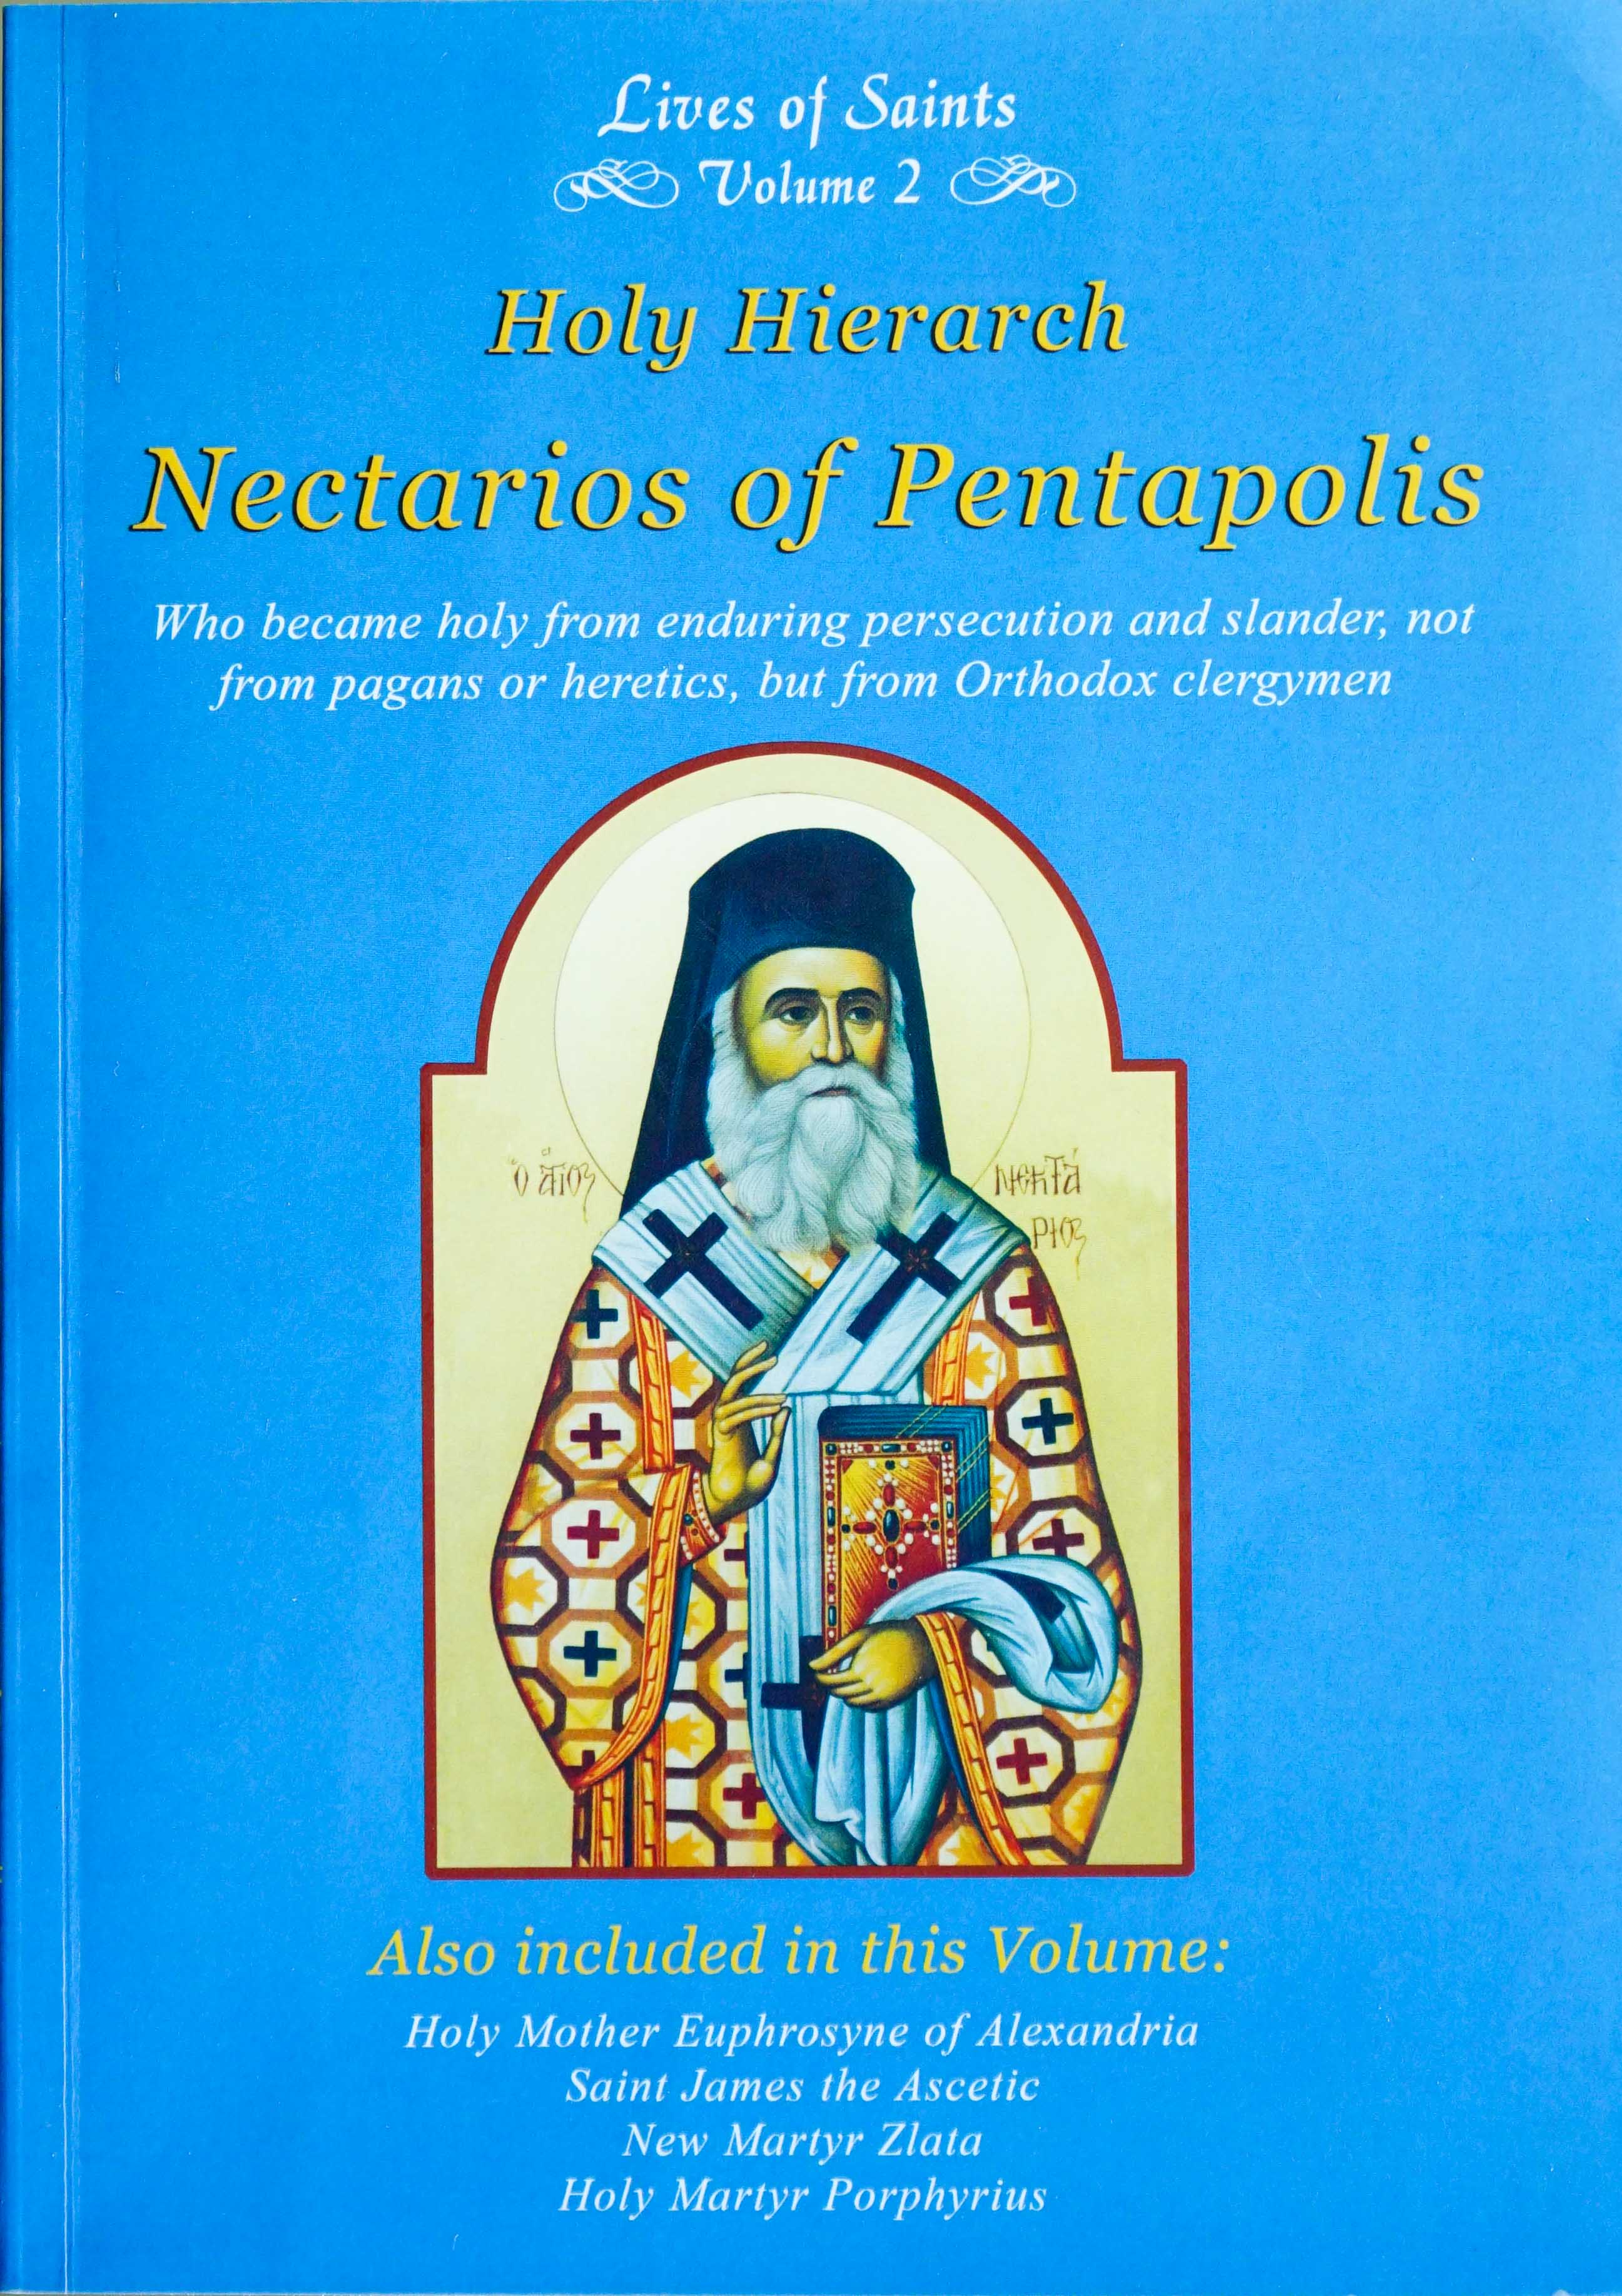 Lives of Saints Vol. 02: Holy Hierarch Nectarios of Pentapolis